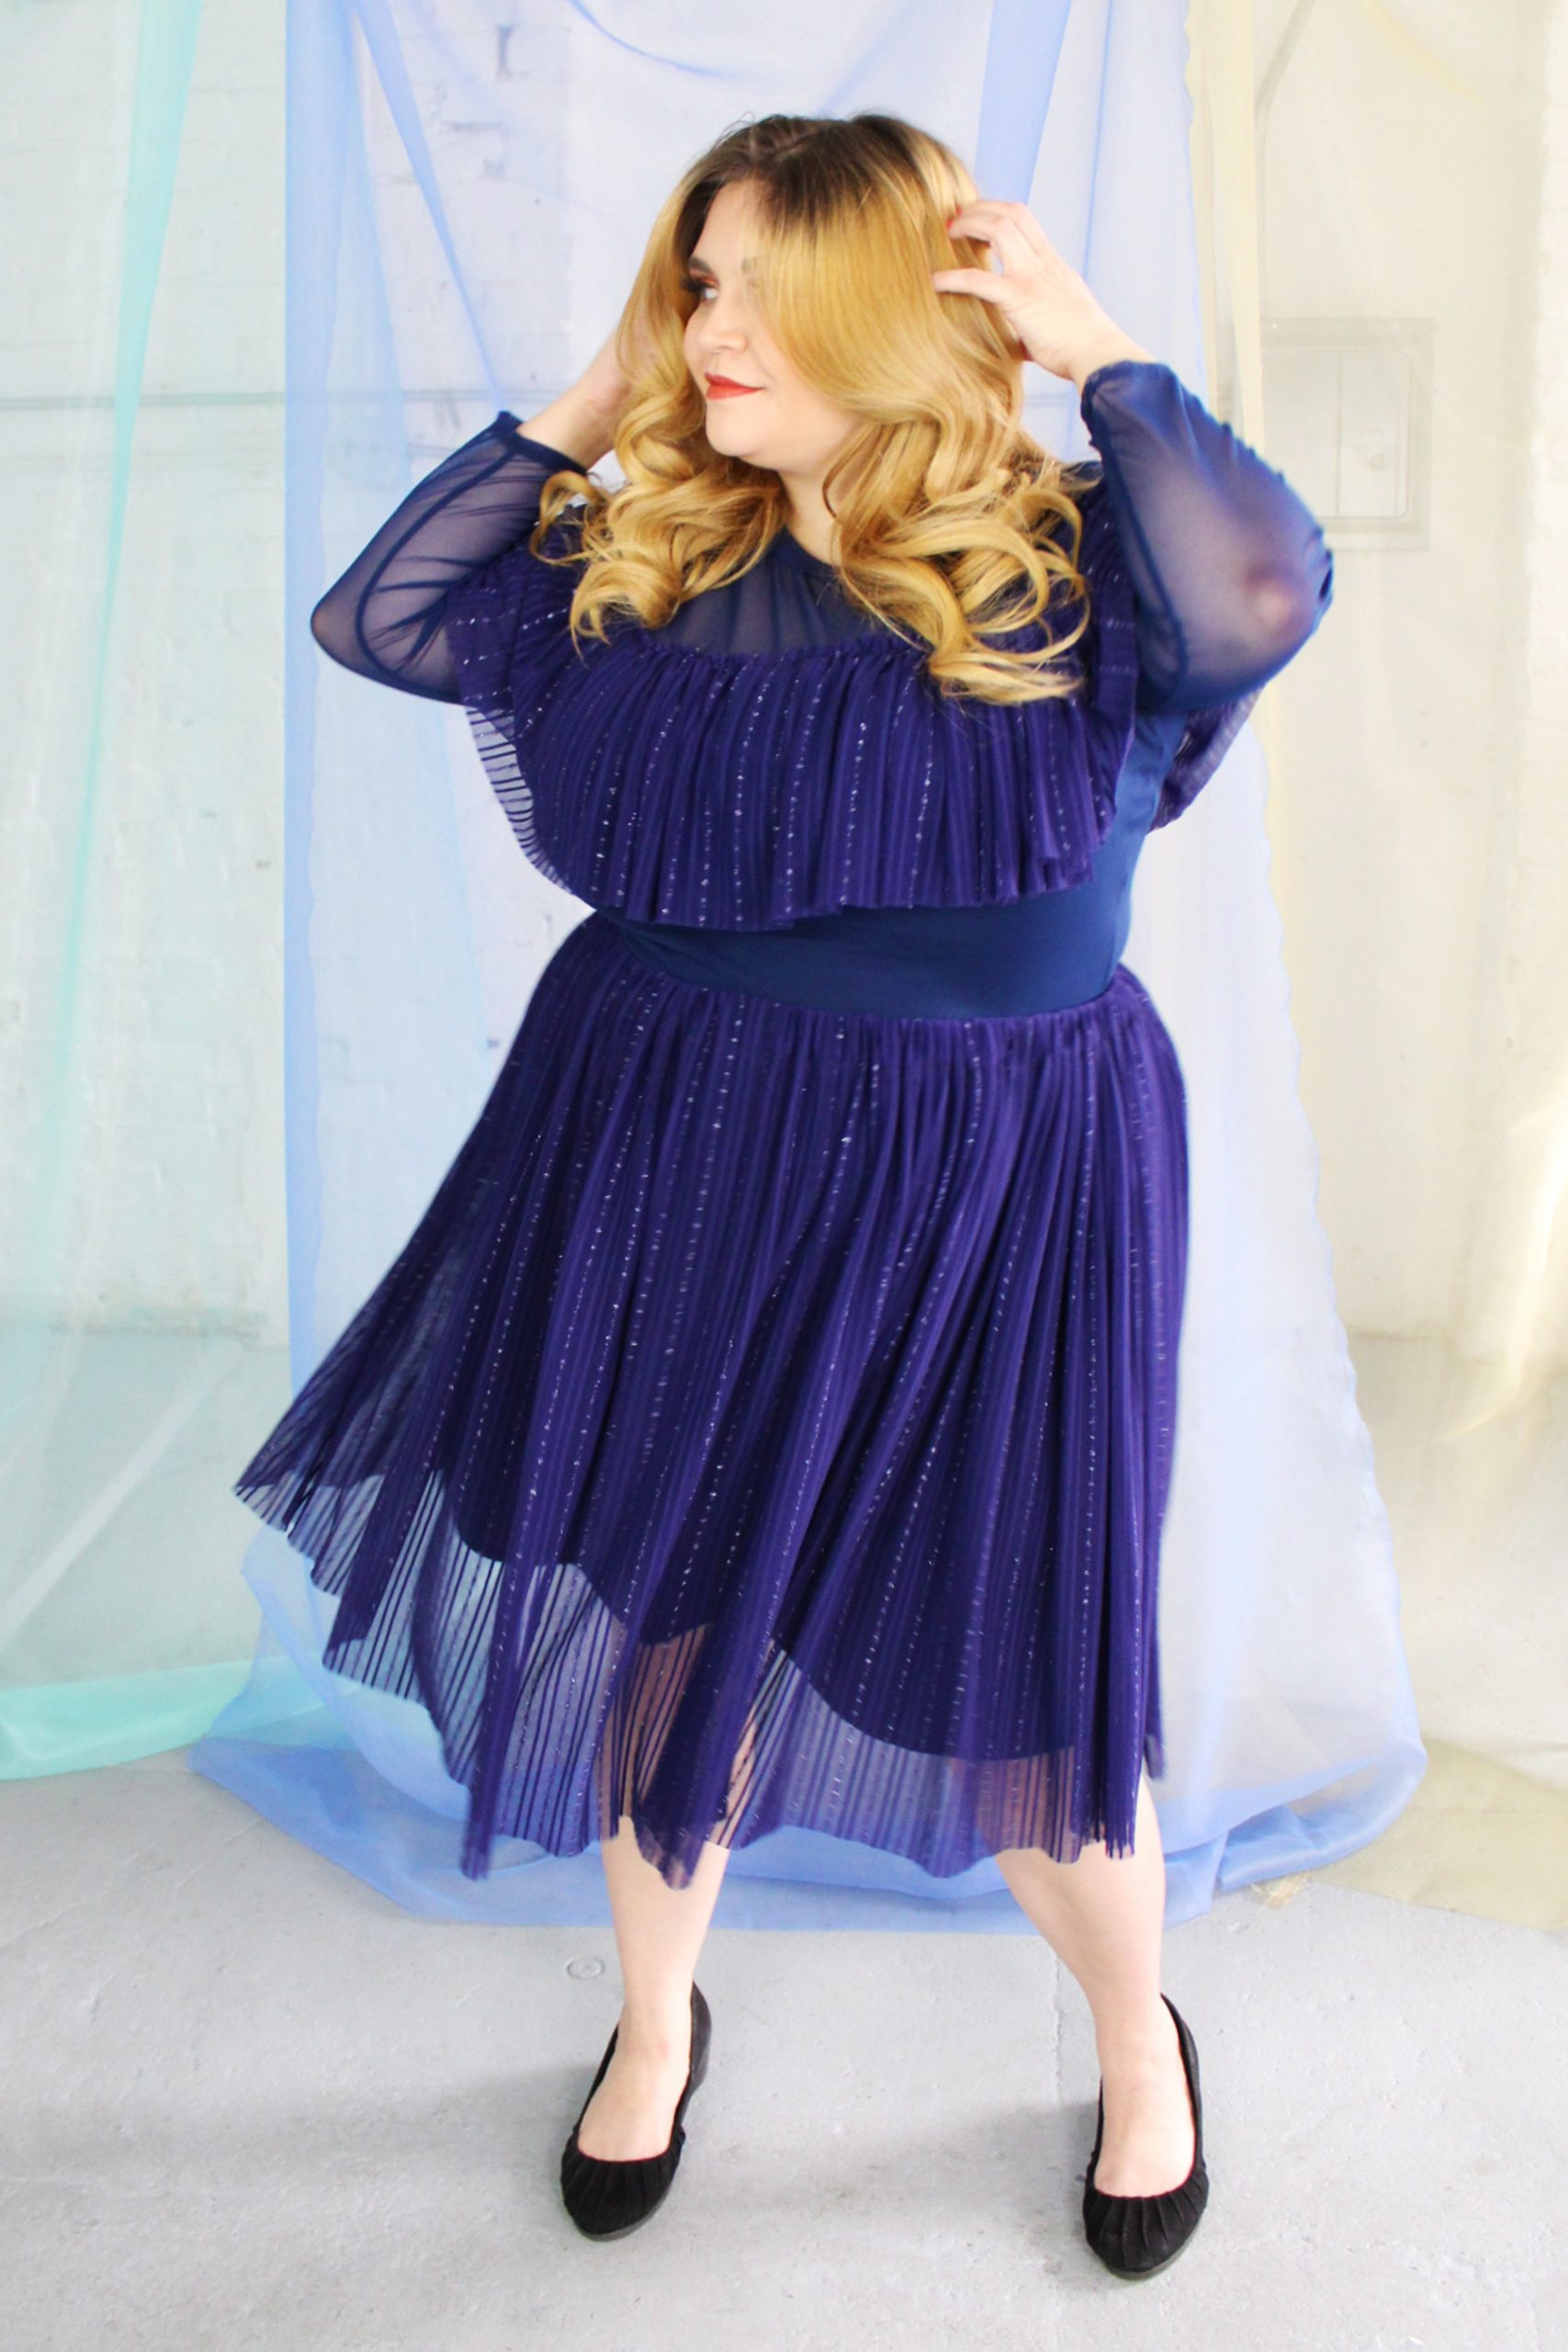 White blonde plus size model wearing navy classic blue mesh skirt smiling and happy, with matching long sleeve ruffle top